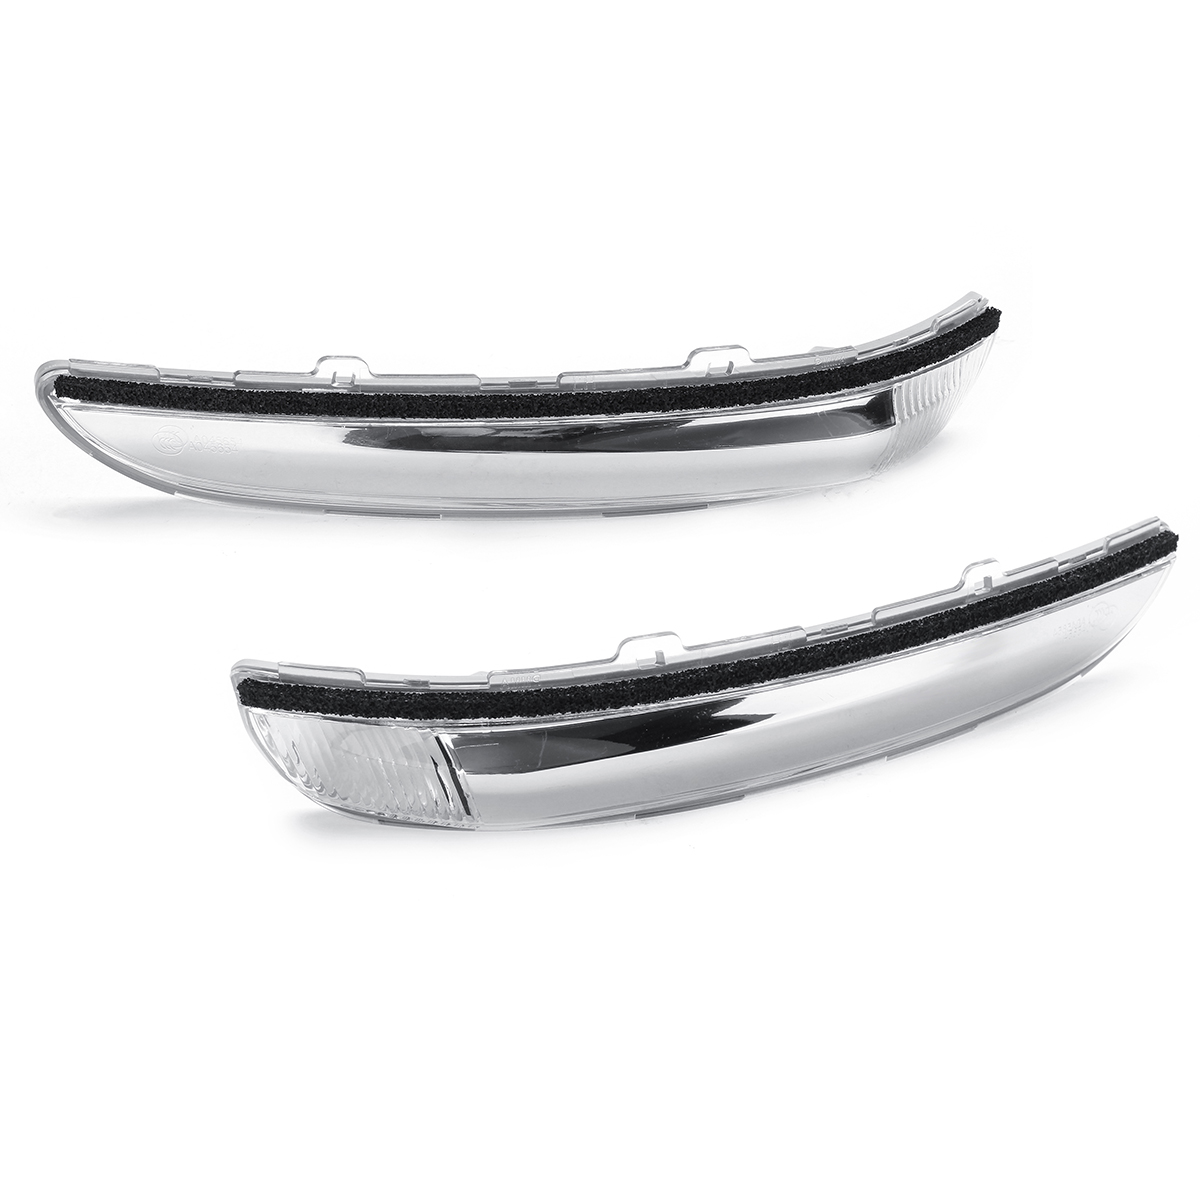 Door Wing Mirror Indicator Lights Shell Side Turn Signal Lamp Cover Clear Left/Right for Peugeot 208 2012-2017